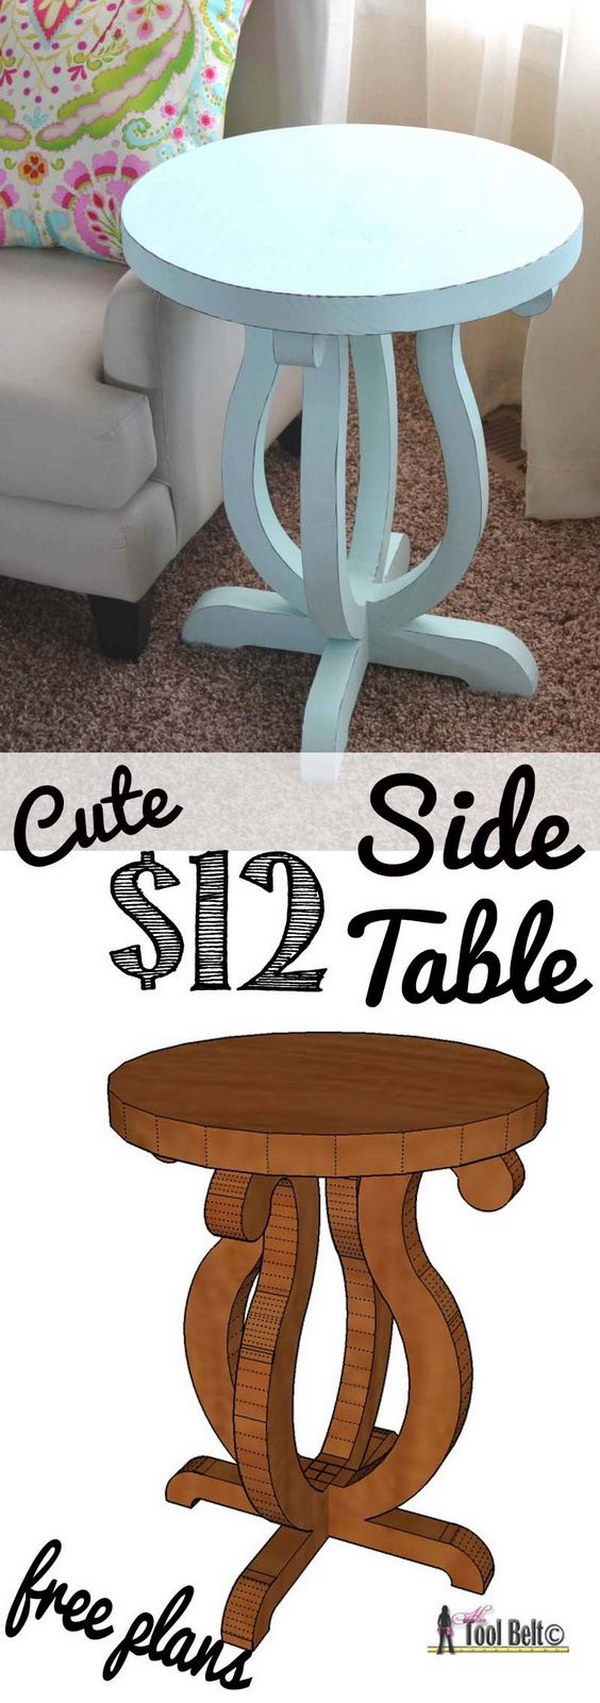 1-diy-side-table-ideas